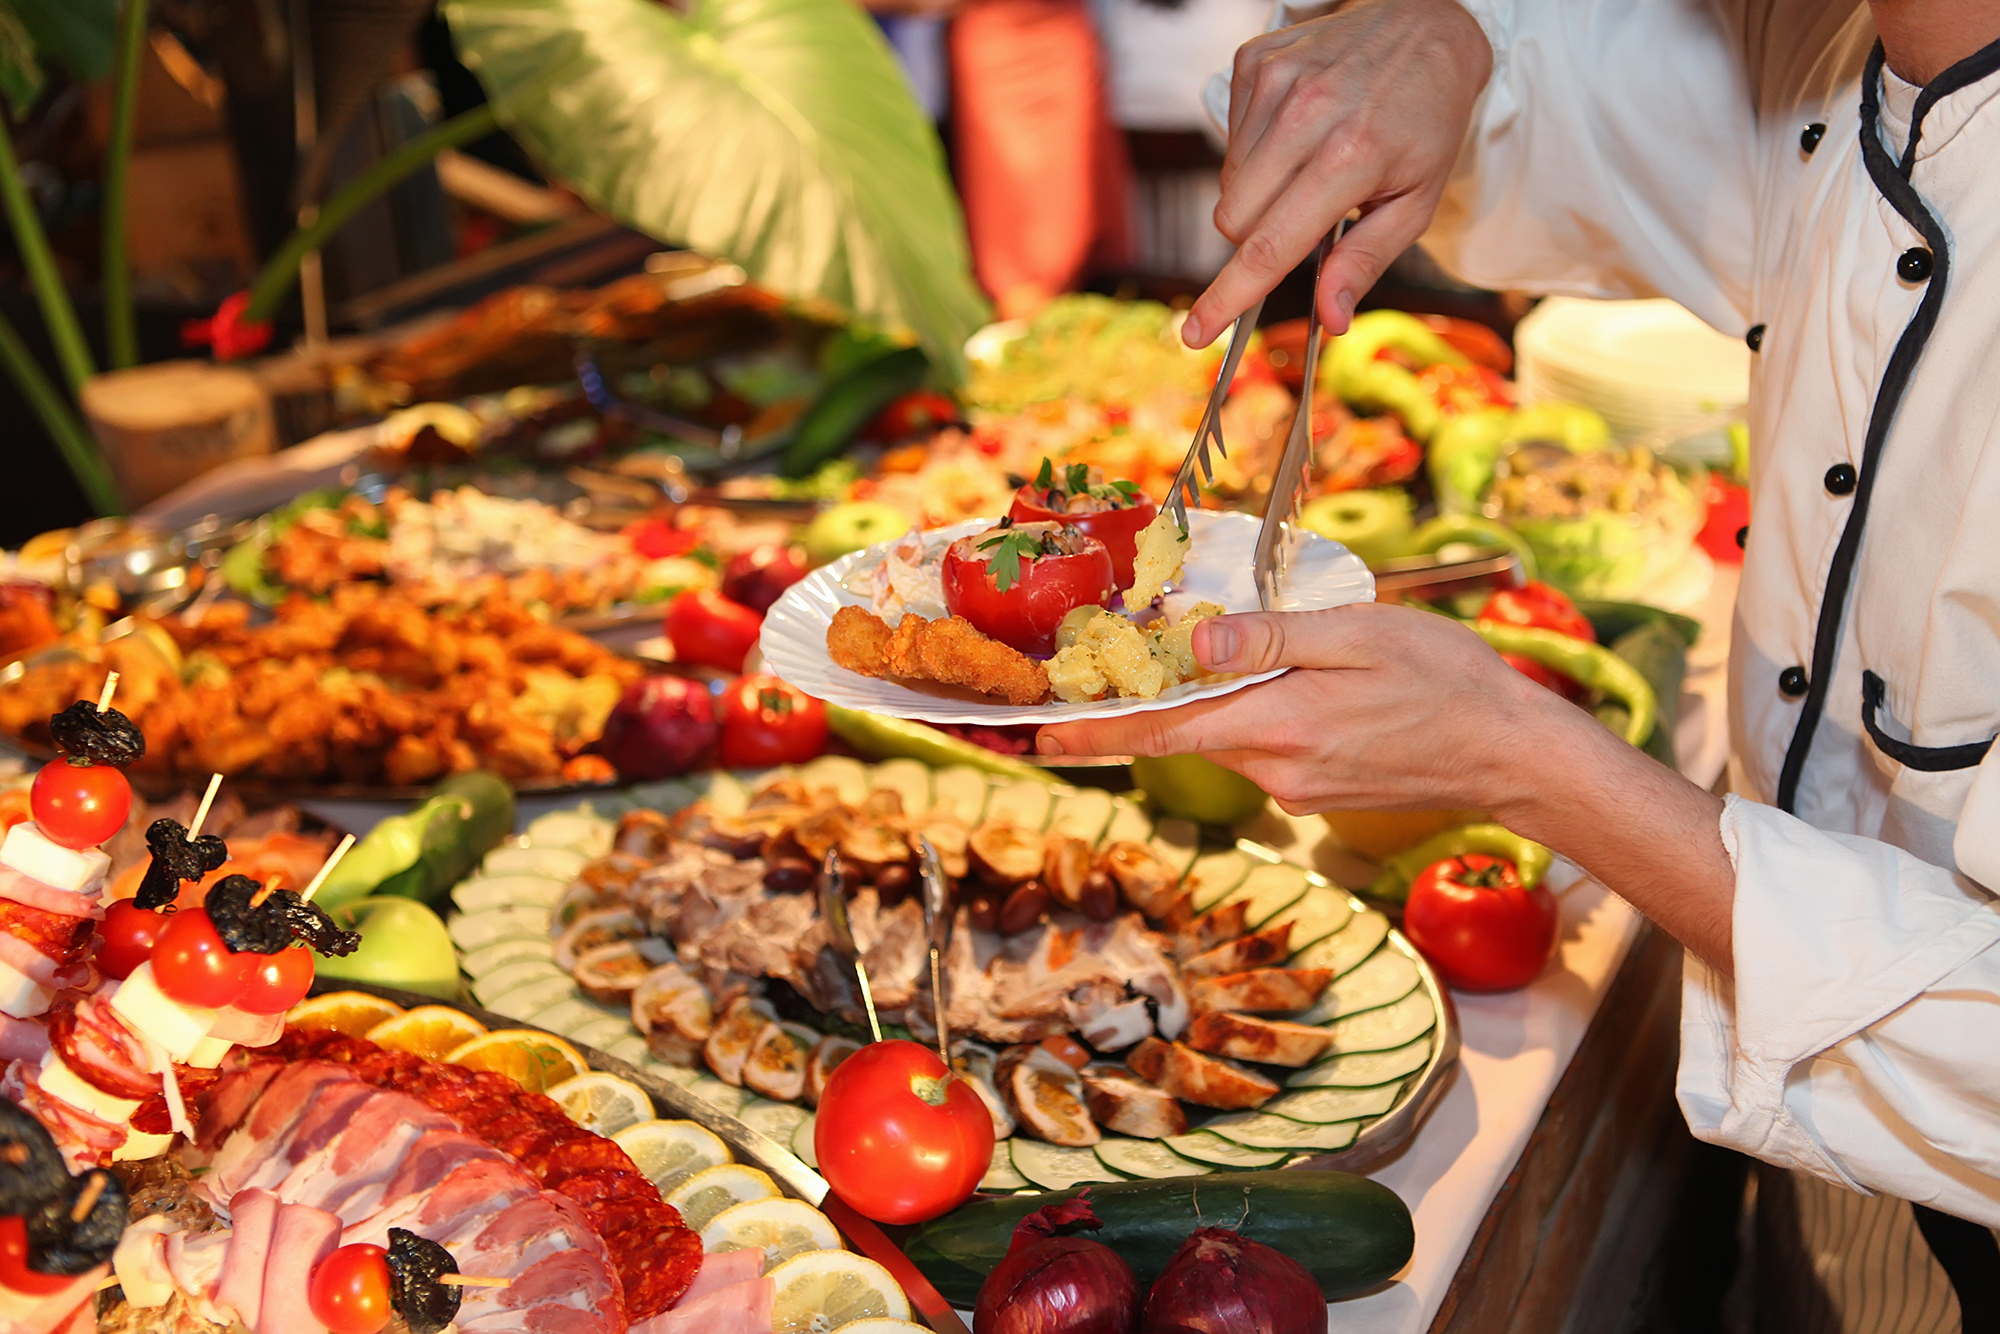 Reel Chefs Catering  Movie Catering and Television Catering by Reel Chefs Catering